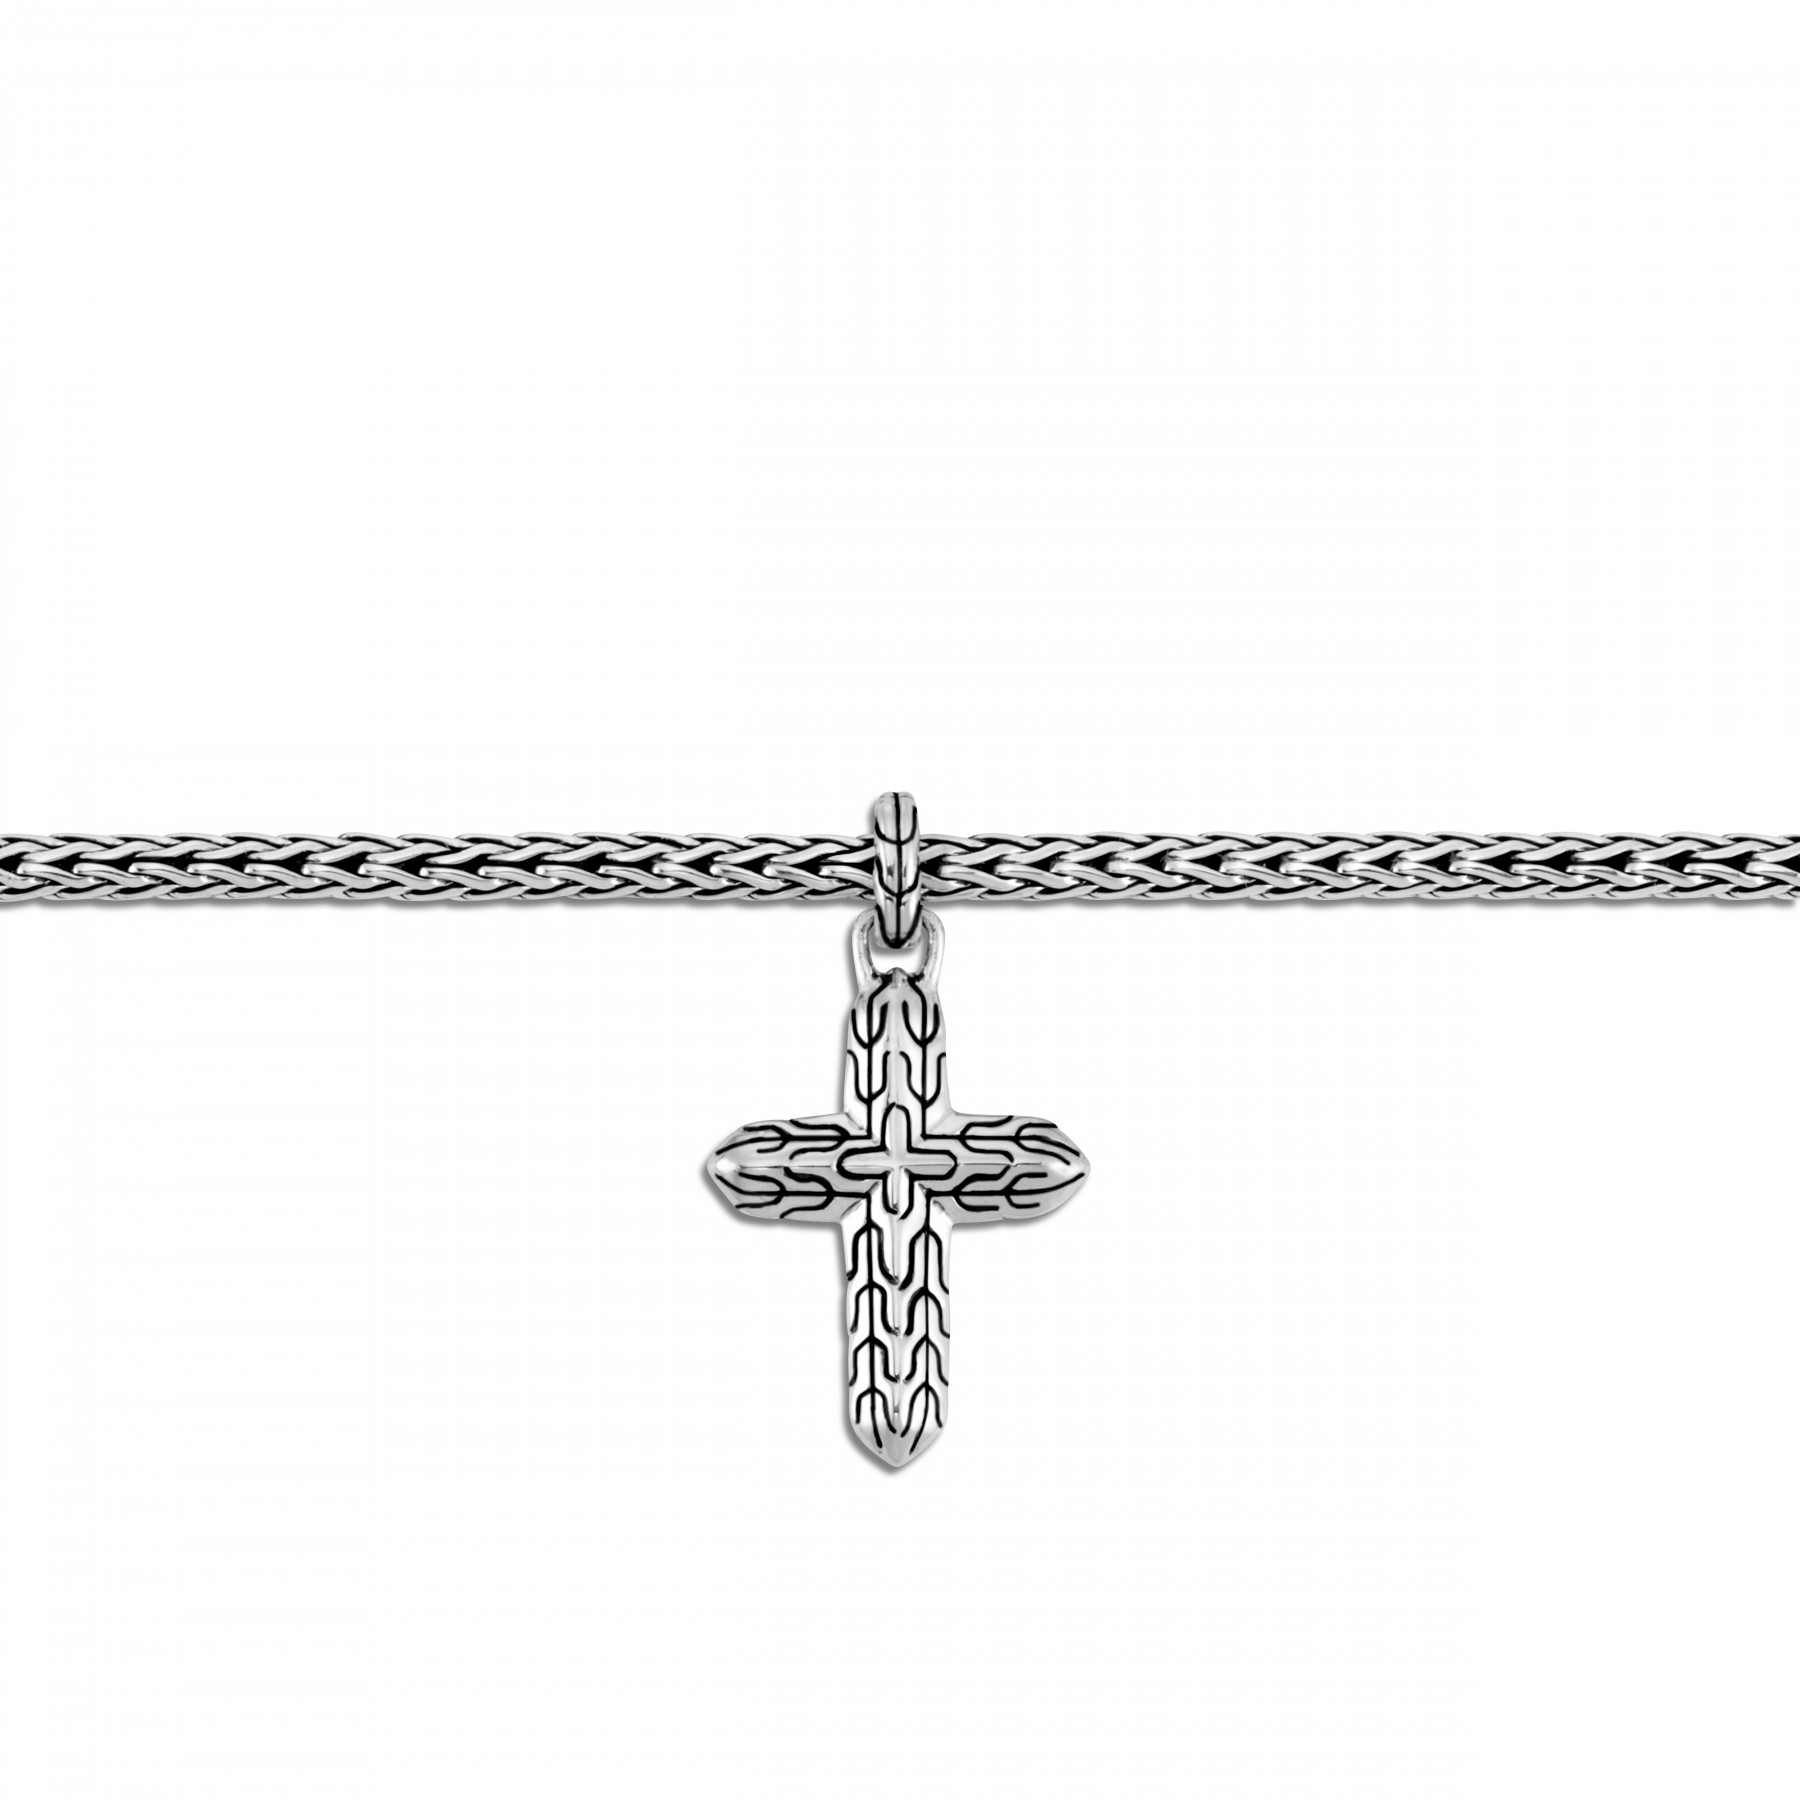 John Hardy Classic Chain Sterling Silver Cross Charm Bracelet close up